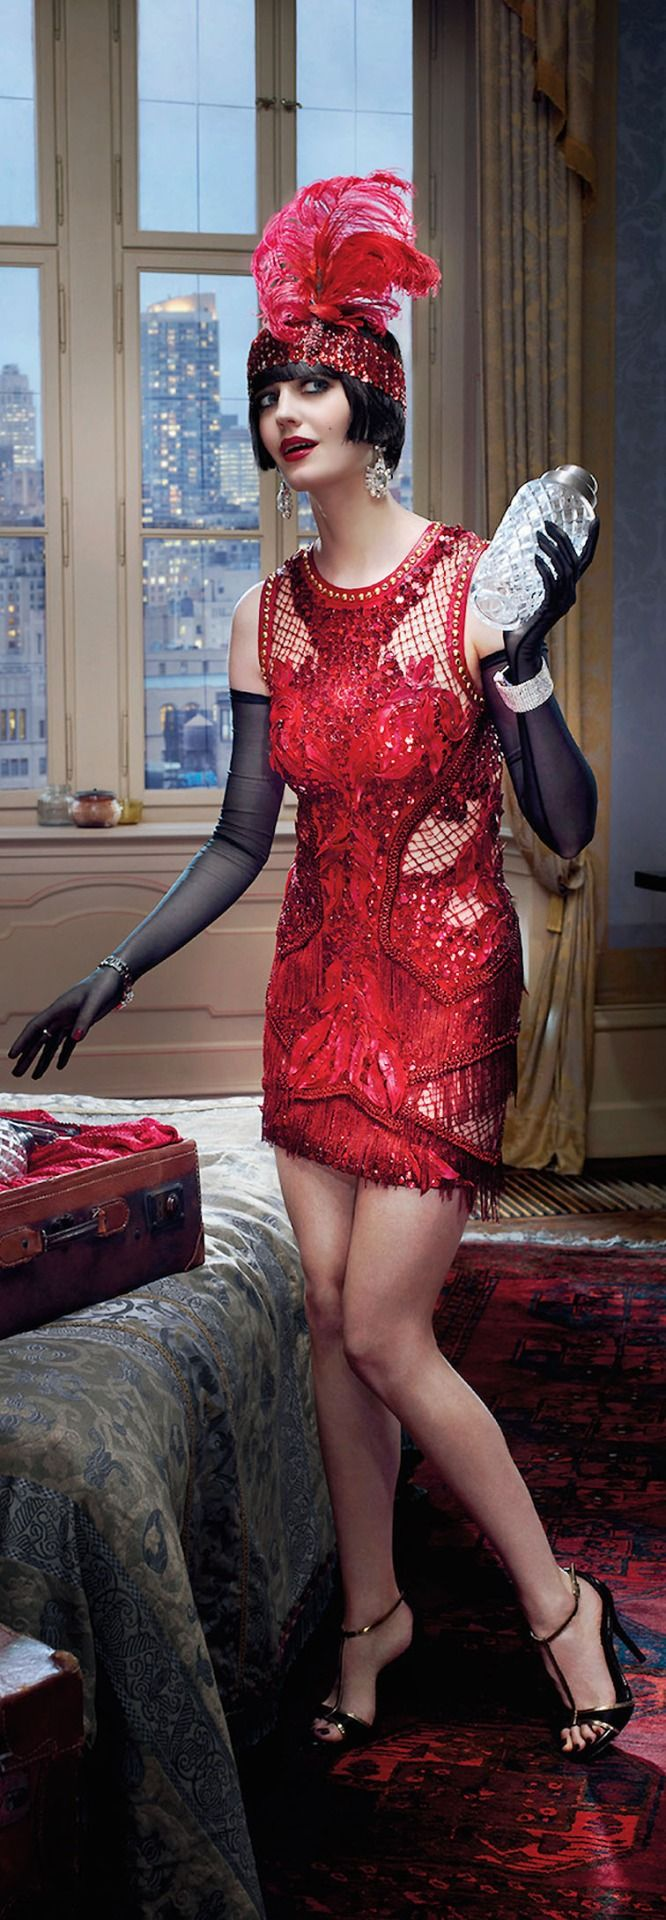 Eva Green for Campari Calendar 2015 wearing a Versace dress and Swarovski jewels.